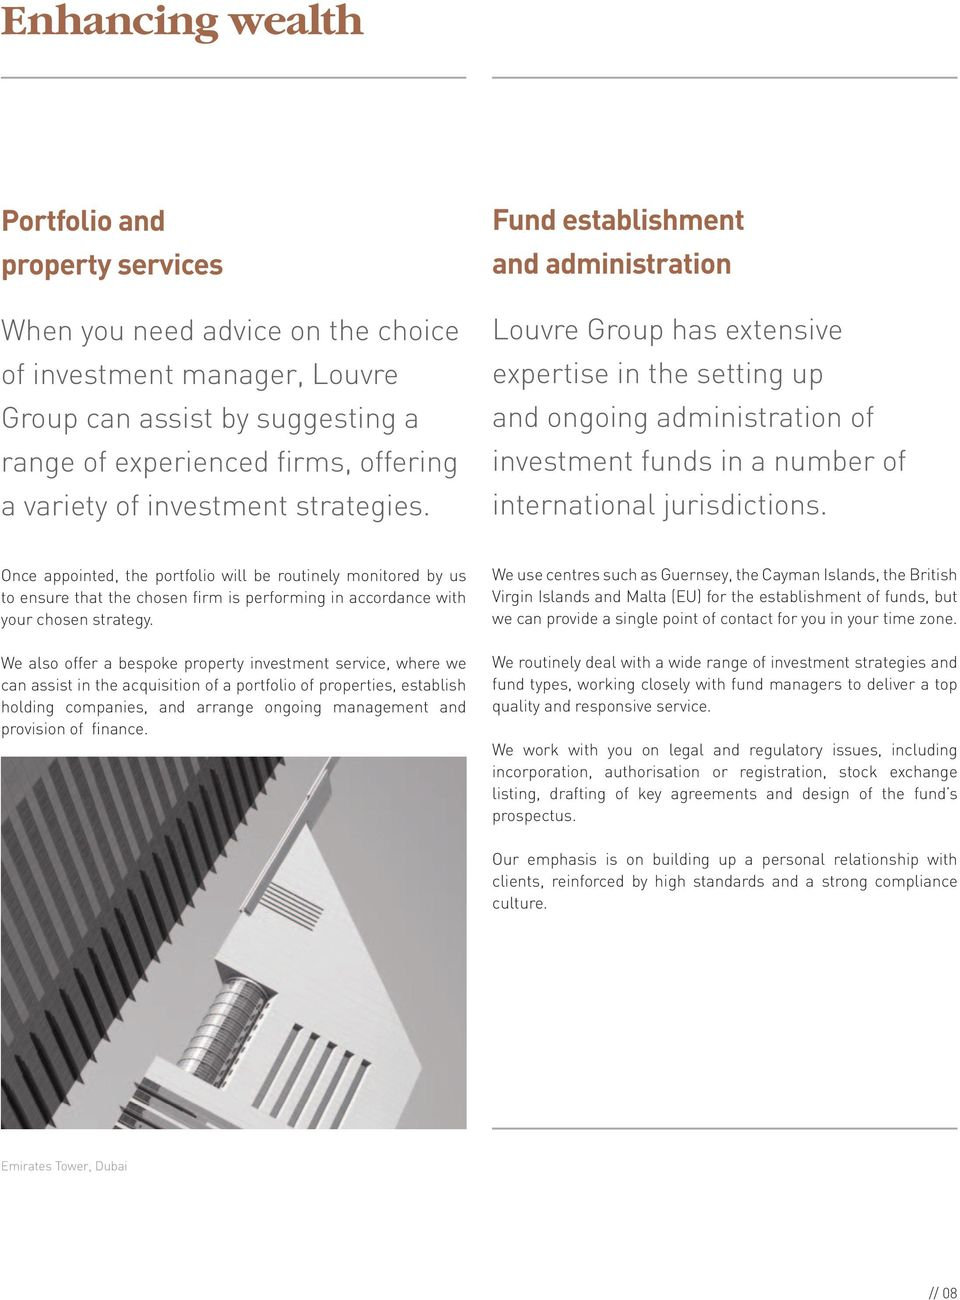 Fund establishment and administration Louvre Group has extensive expertise in the setting up and ongoing administration of investment funds in a number of international jurisdictions.